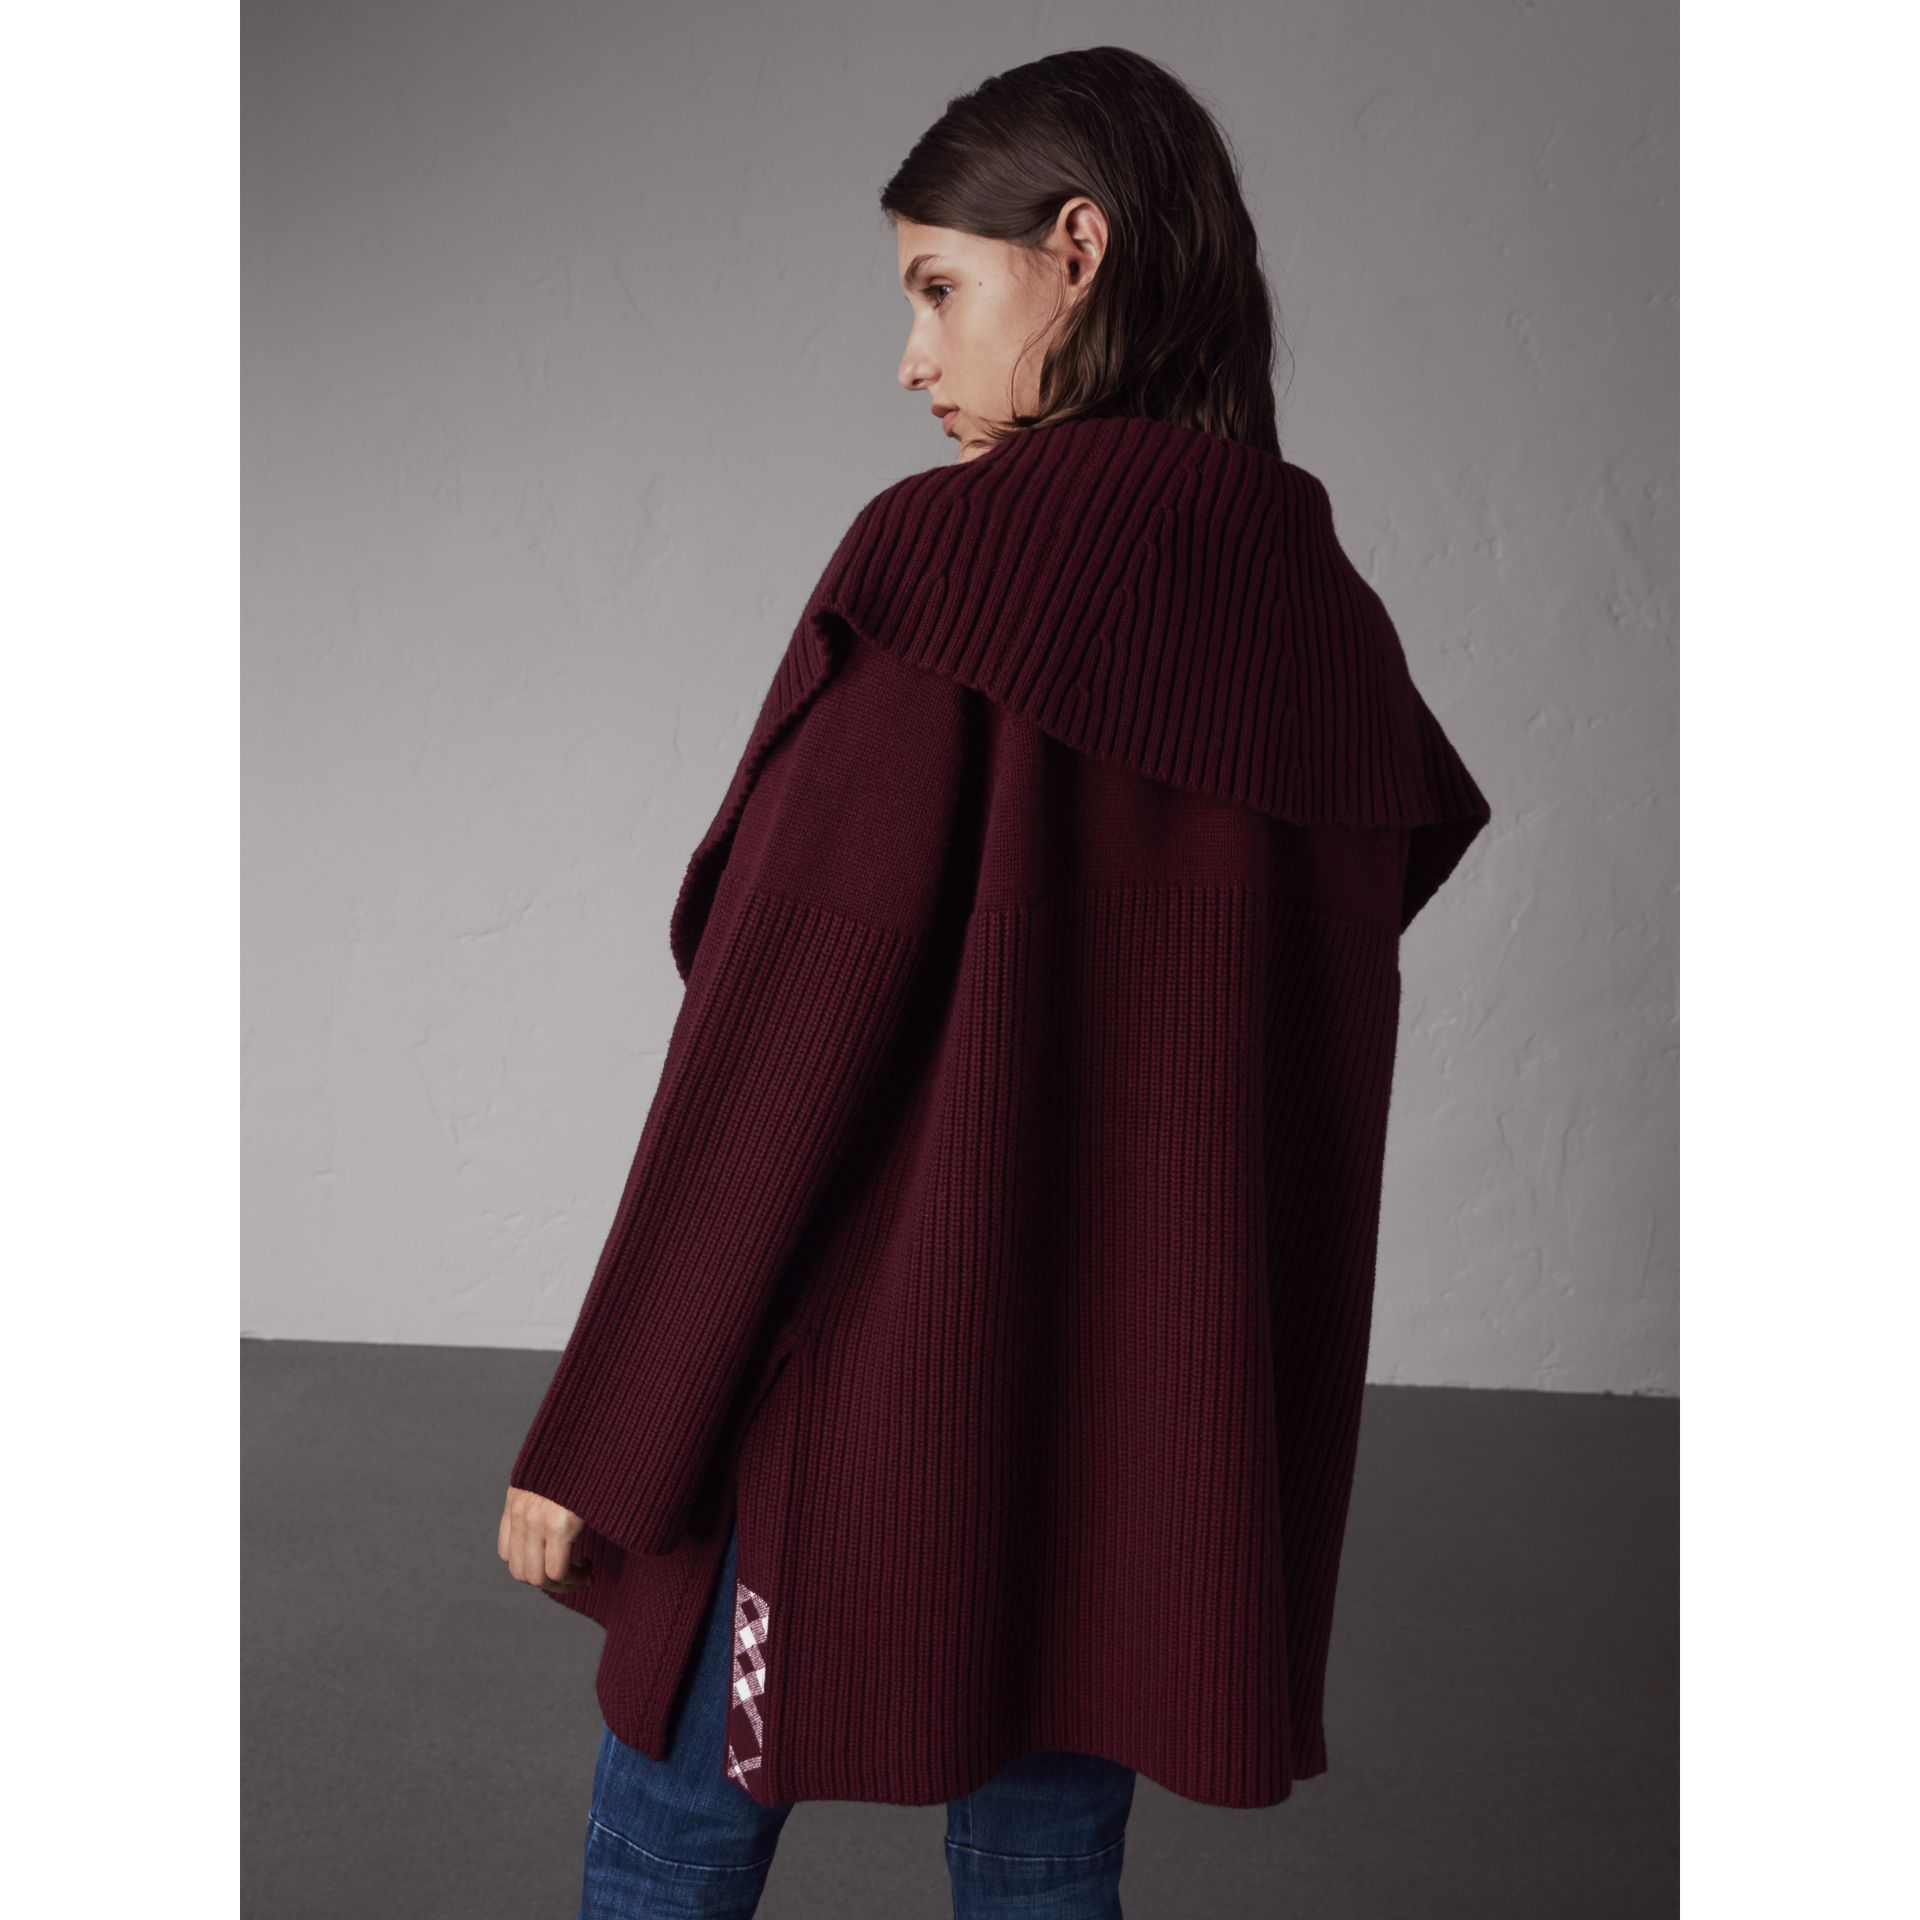 Ribbed Wool Cashmere Cardigan Coat in Burgundy - Women | Burberry - gallery image 3